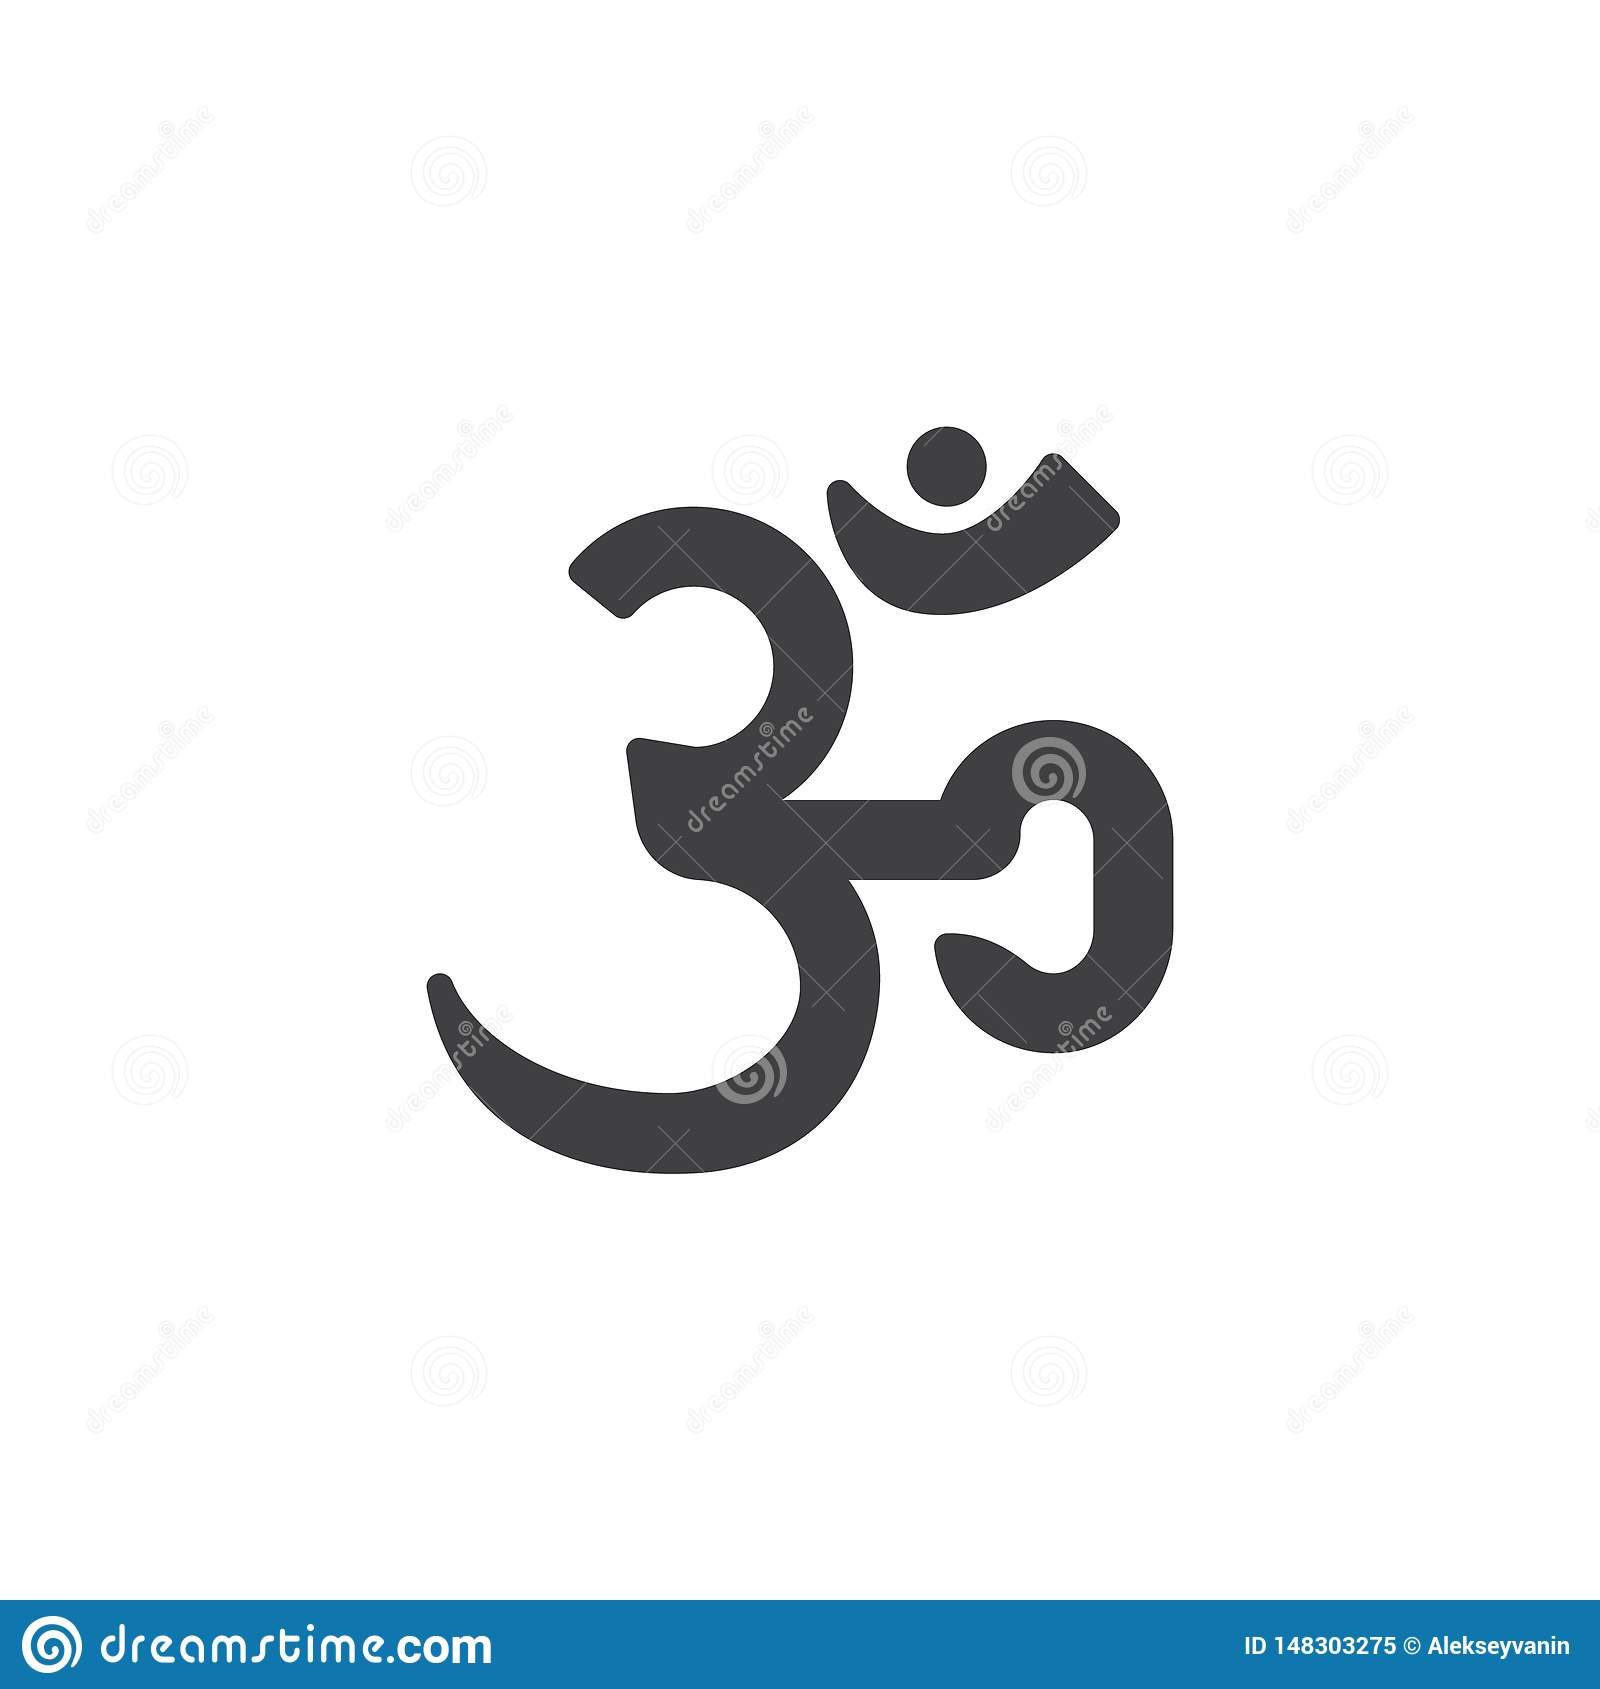 Hindu Om Aum Vector Icon Stock Vector Illustration Of Sign 148303275